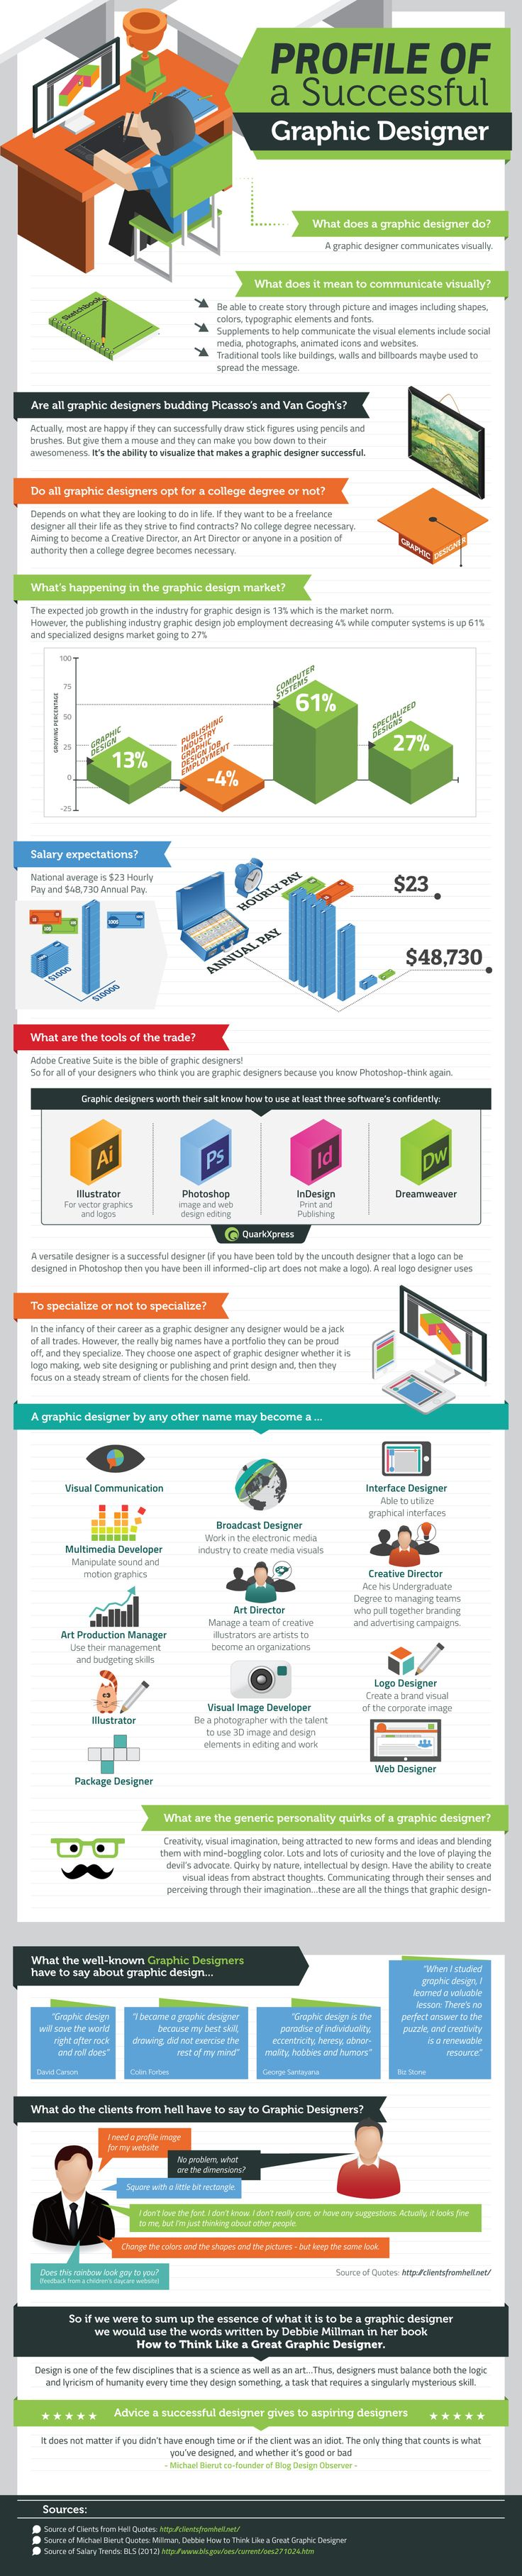 """Do you want to be a graphic designer or have you already embarked on your graphic design career? Logo design online business Logo Design Guru has created an infographic titled """"The Profile of A Successful Graphic Designer"""", that presents a """"snapshot of what it means to be a graphic designer""""."""